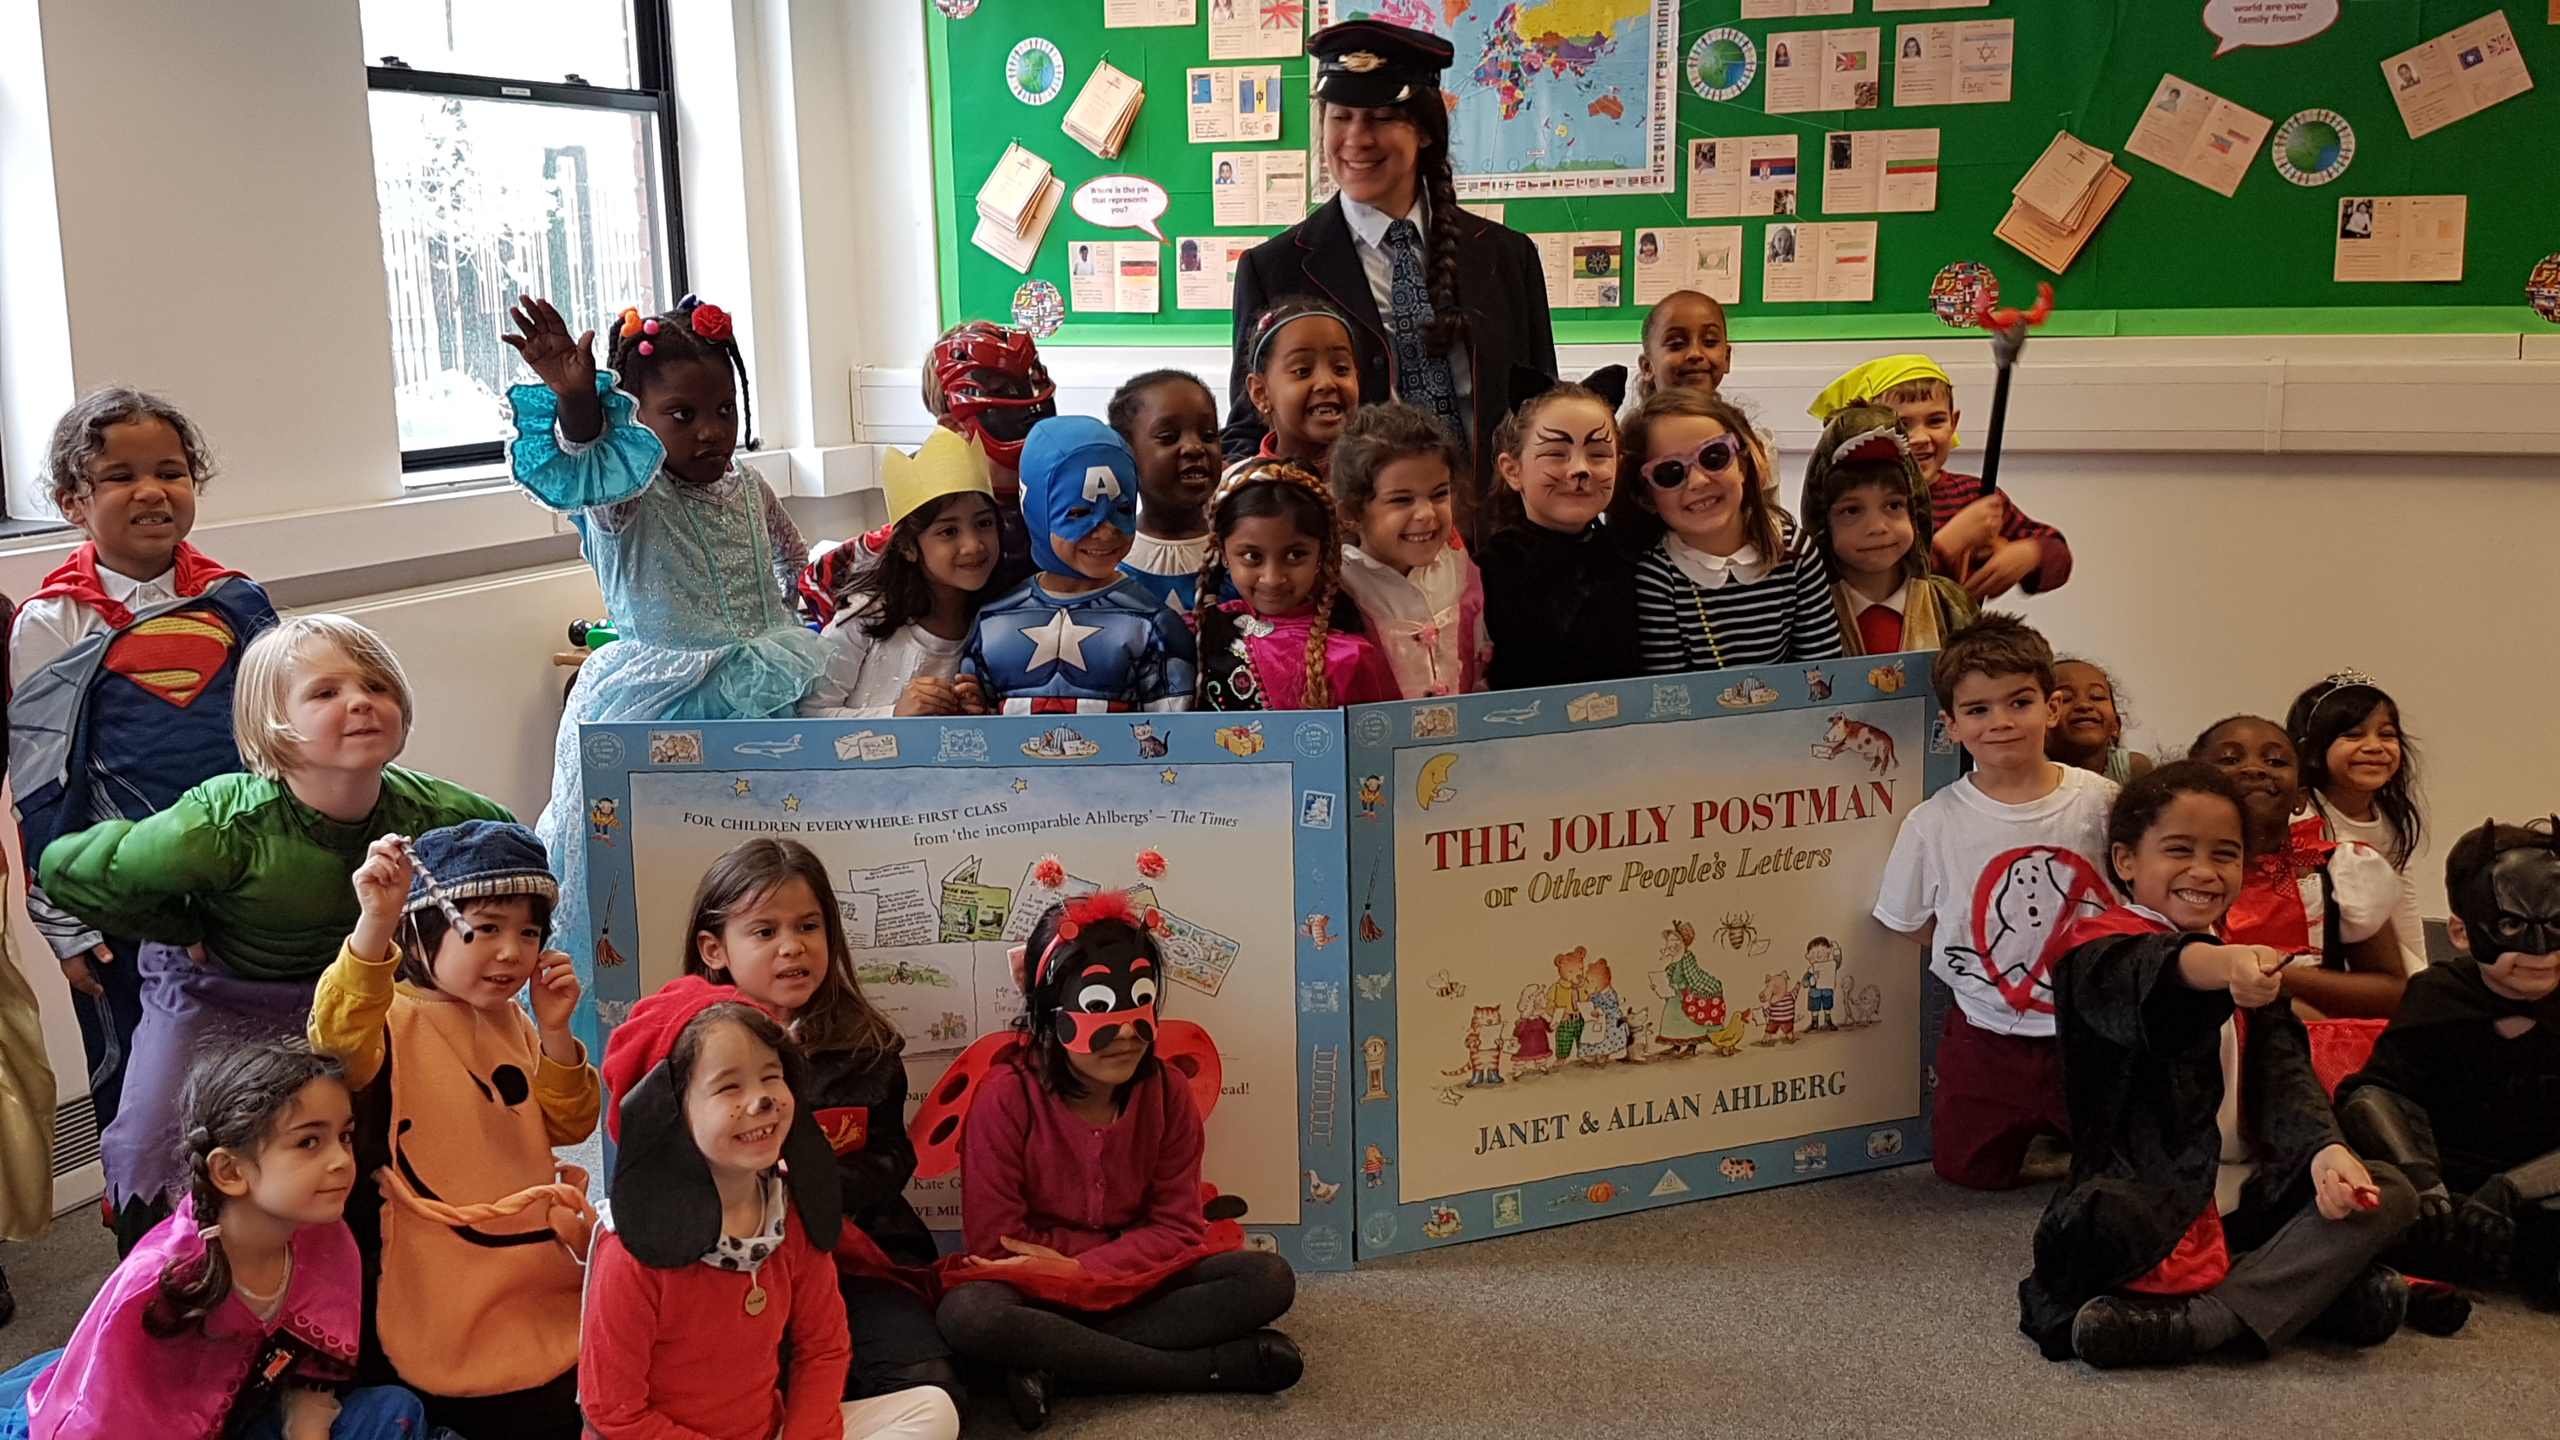 Above: Blake Envelopes has teamed up with The Postal Museum to support its Jolly Postman Learning Programme, which aims to help improve literacy in deprived areas of London.